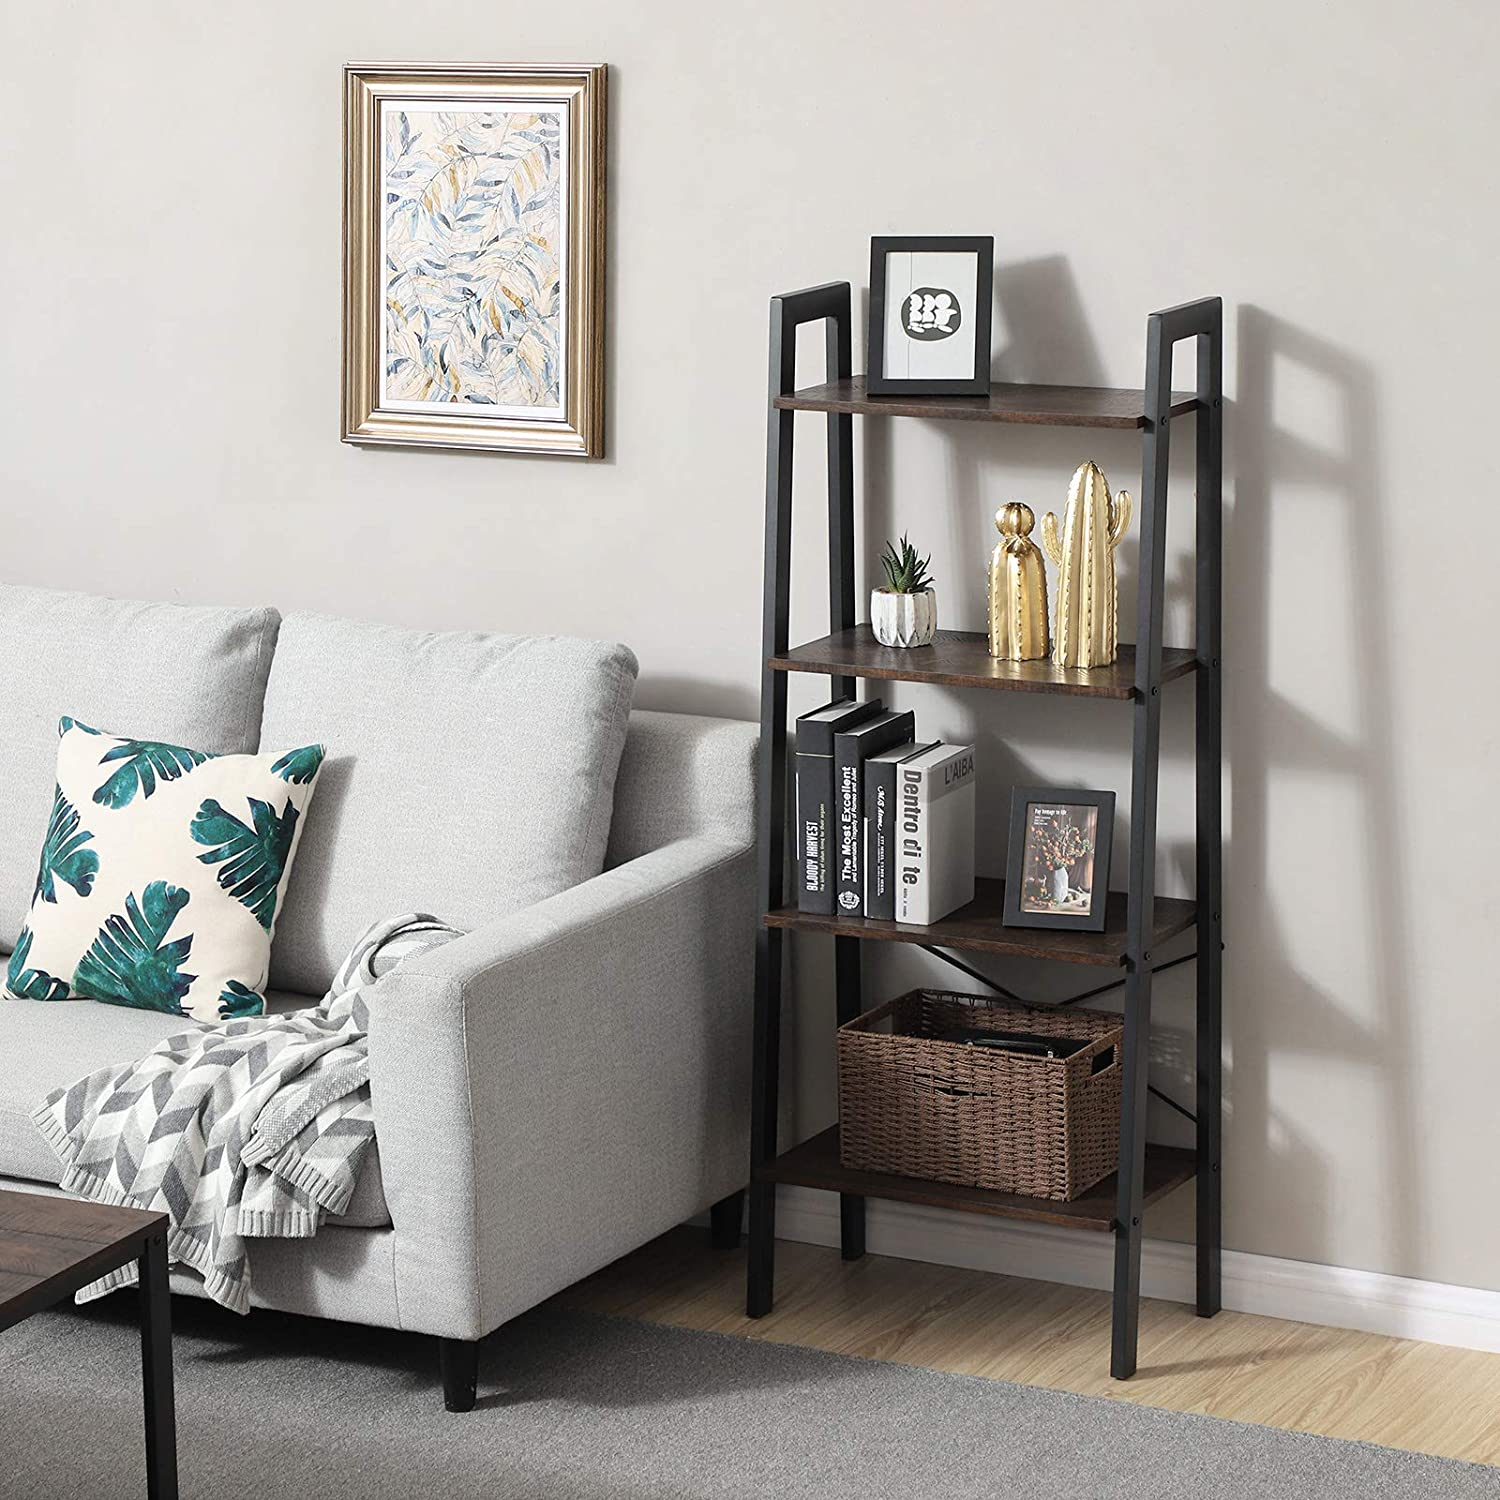 VASAGLE Industrial Bookshelf, 4-Tier Ladder Shelf, Free Standing Storage Shelves, Stable Metal Frame, in The Living Room Kitchen or Balcony, Easy to Assemble ULLS44BF, Rustic Dark Brown